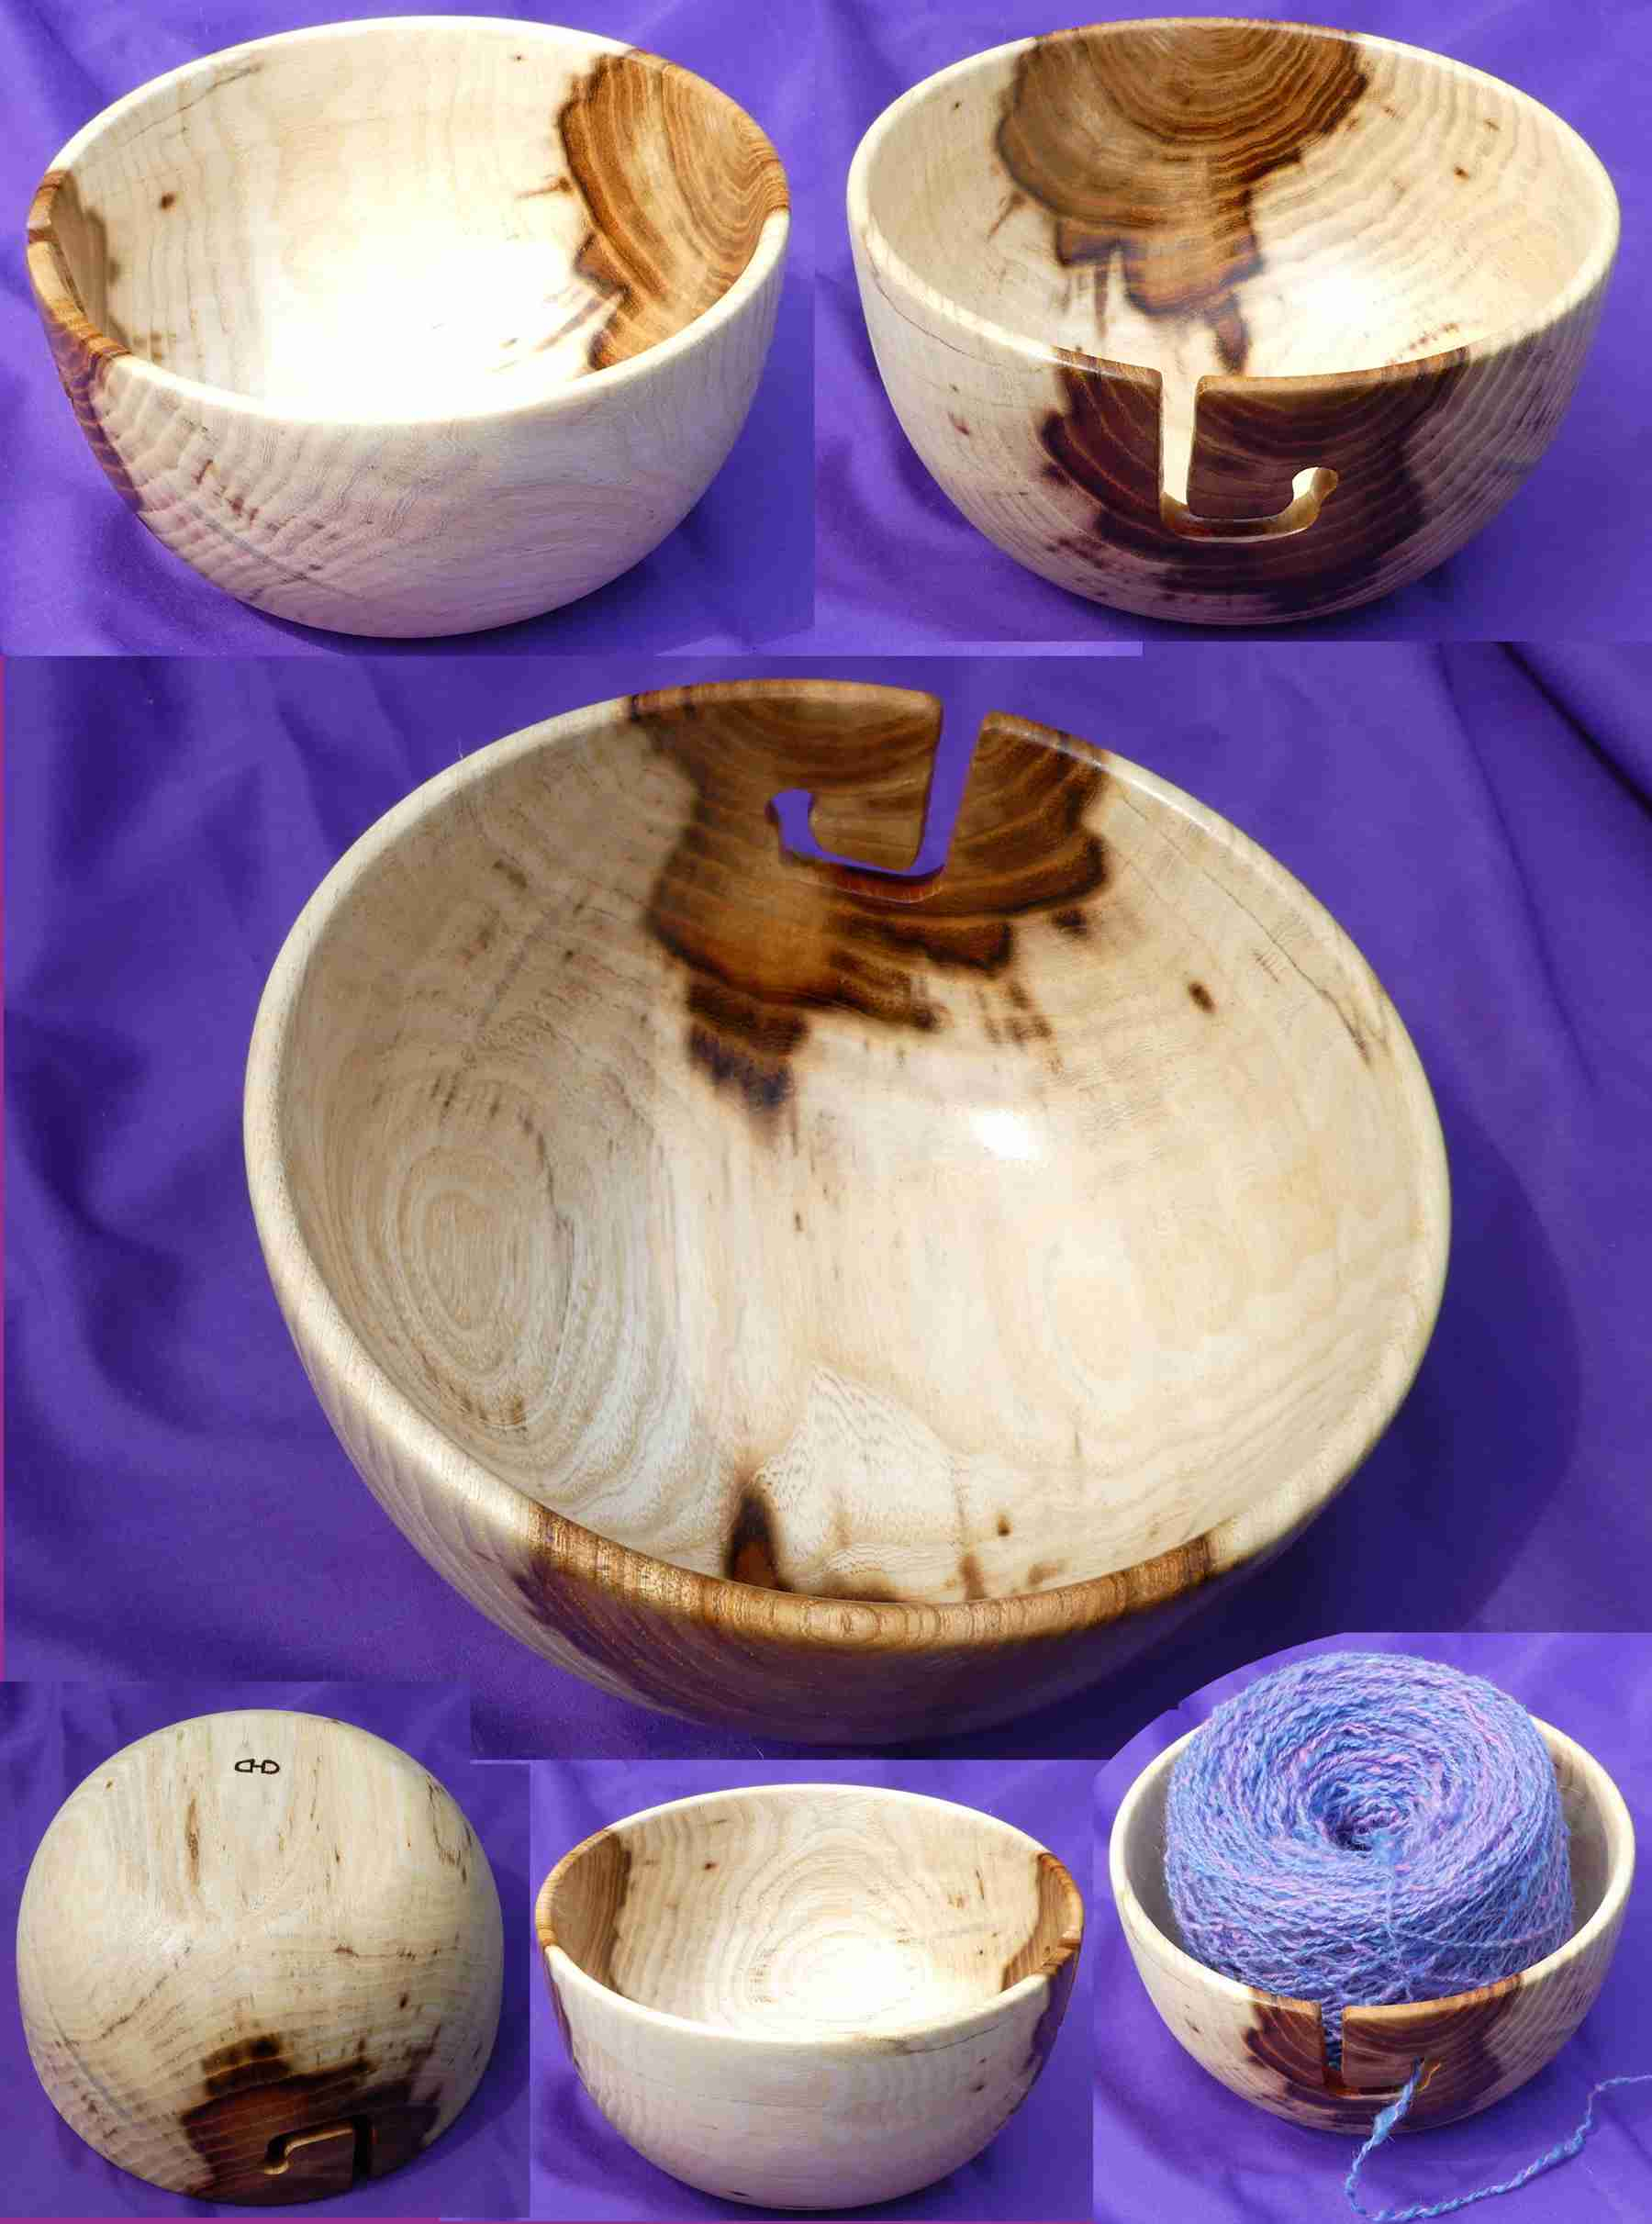 Yarn bowl for holding your cake, skein, or ball of yarn handturned from Ailanthus altissima by Cynthia D. Haney on her wood lathe.